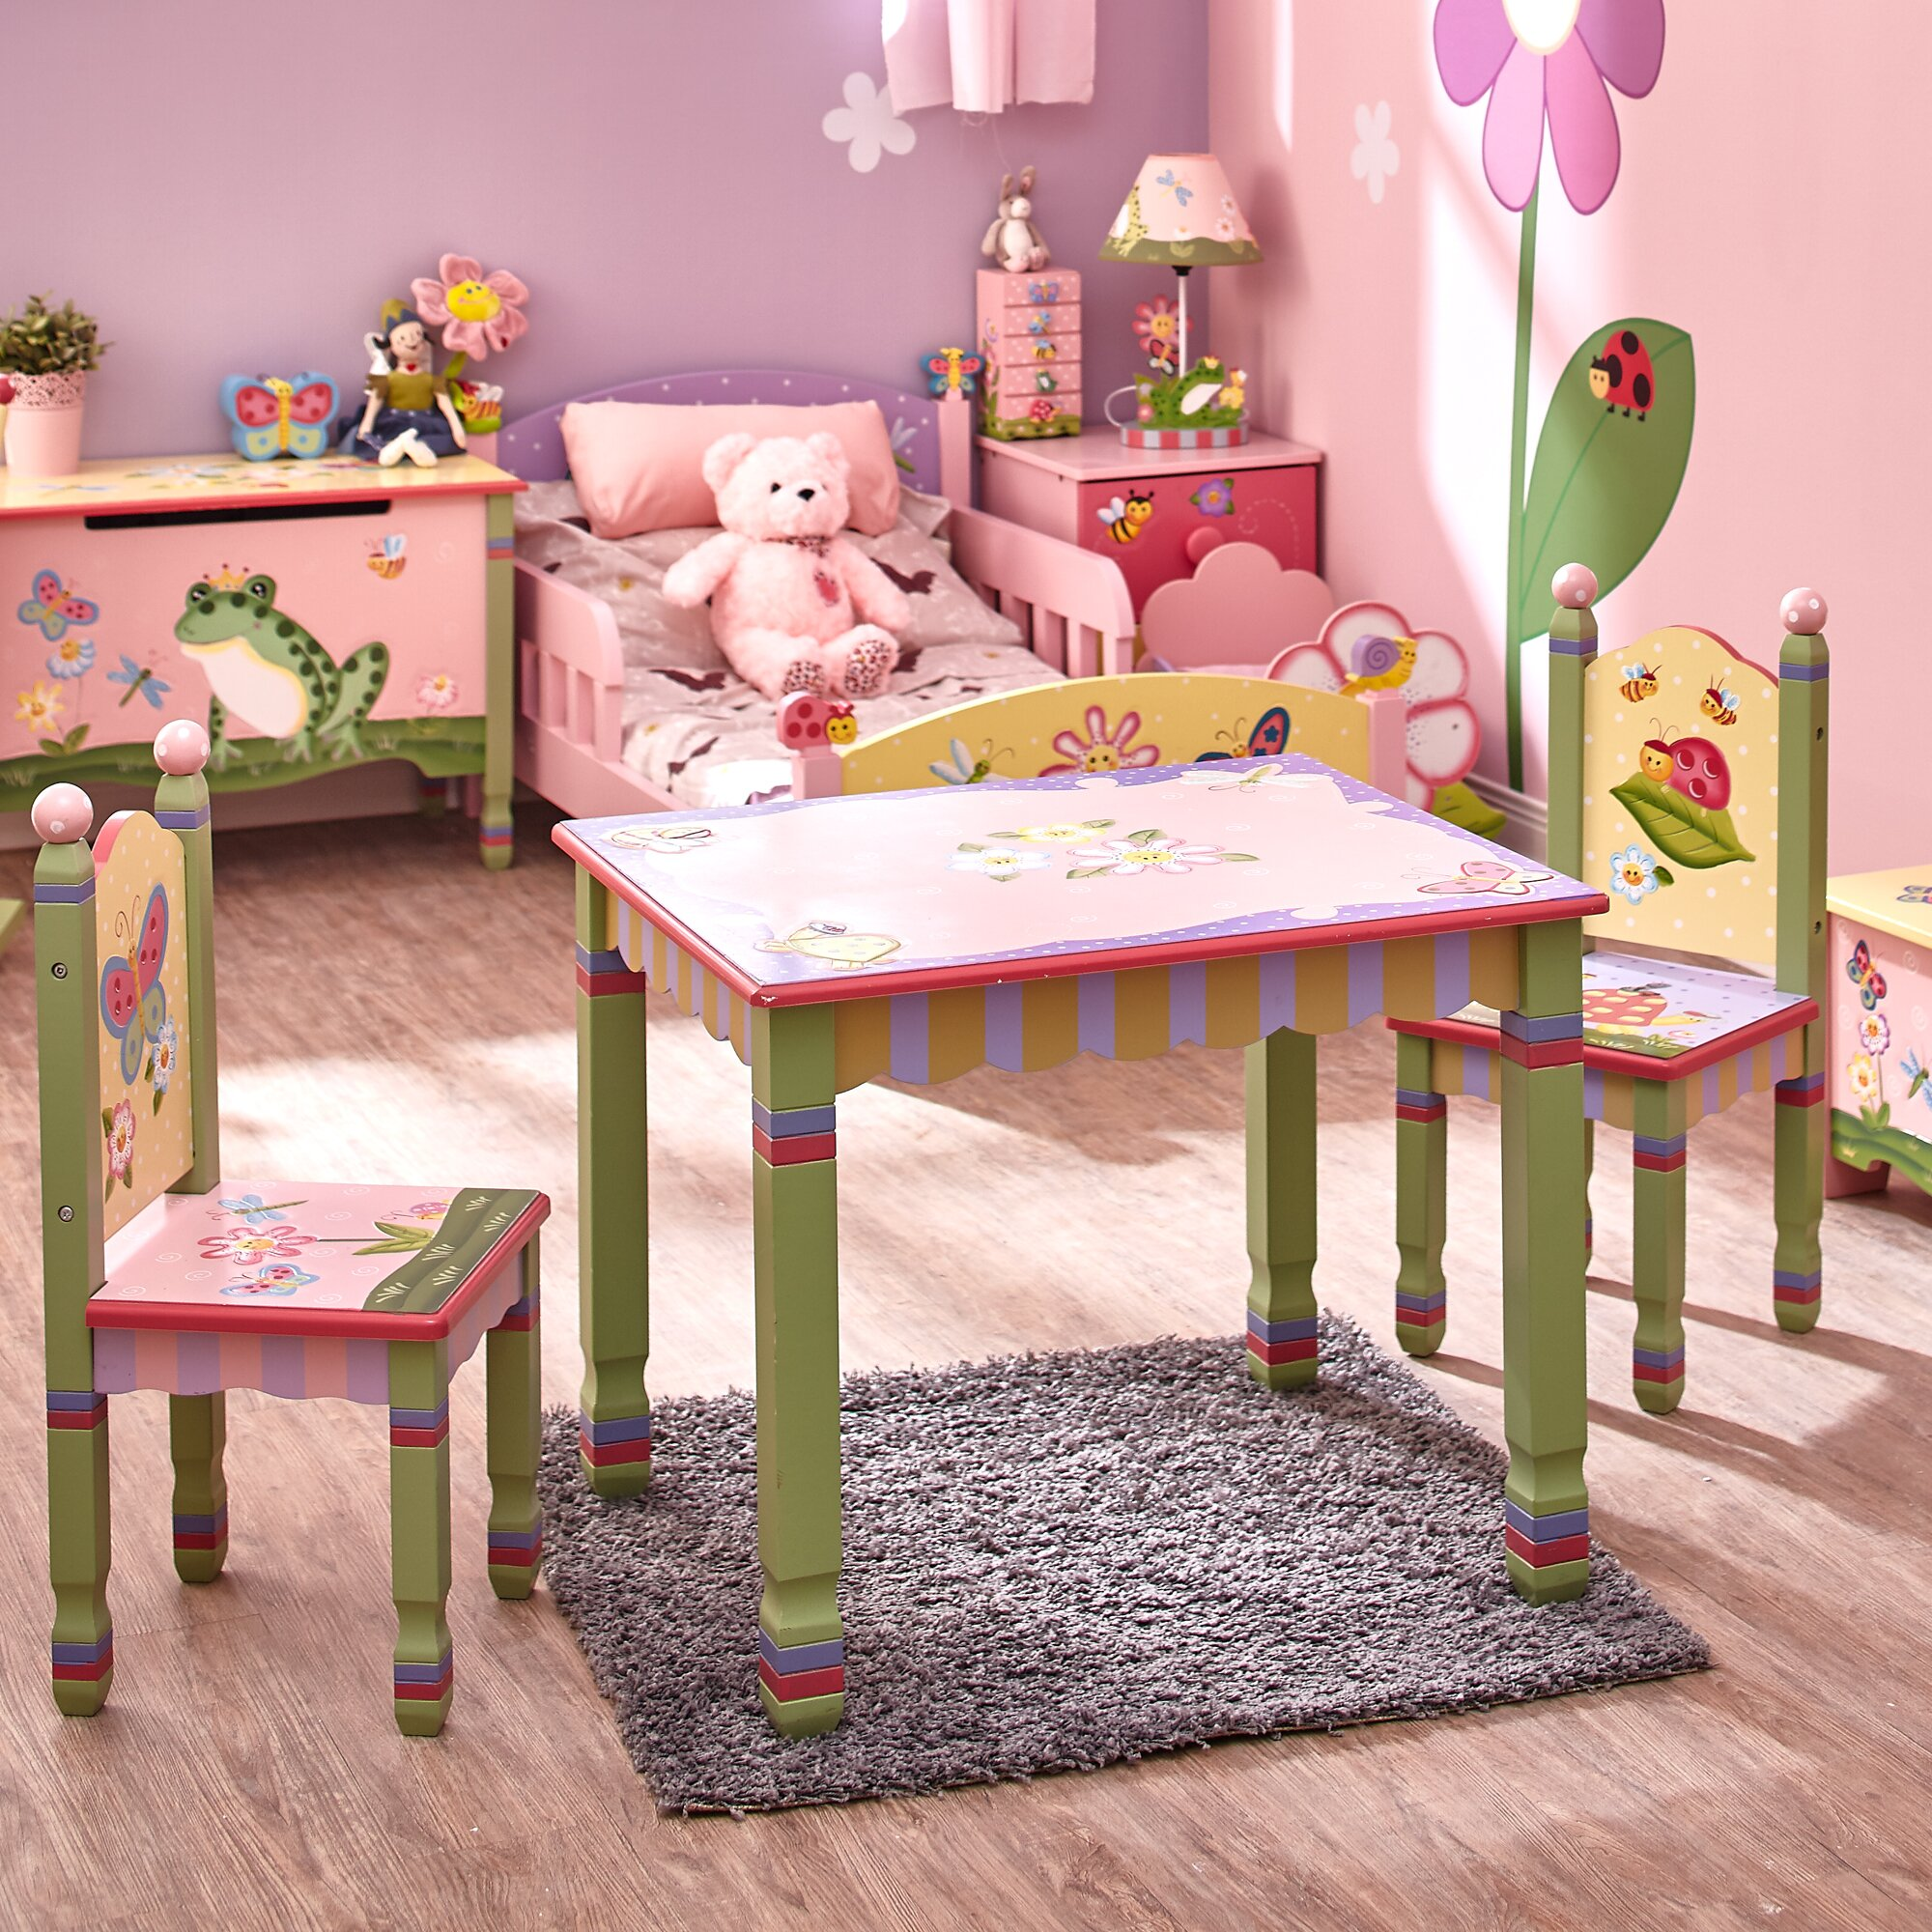 Table And Chair Set: Fantasy Fields Magic Garden Kids 3 Piece Table & Chair Set